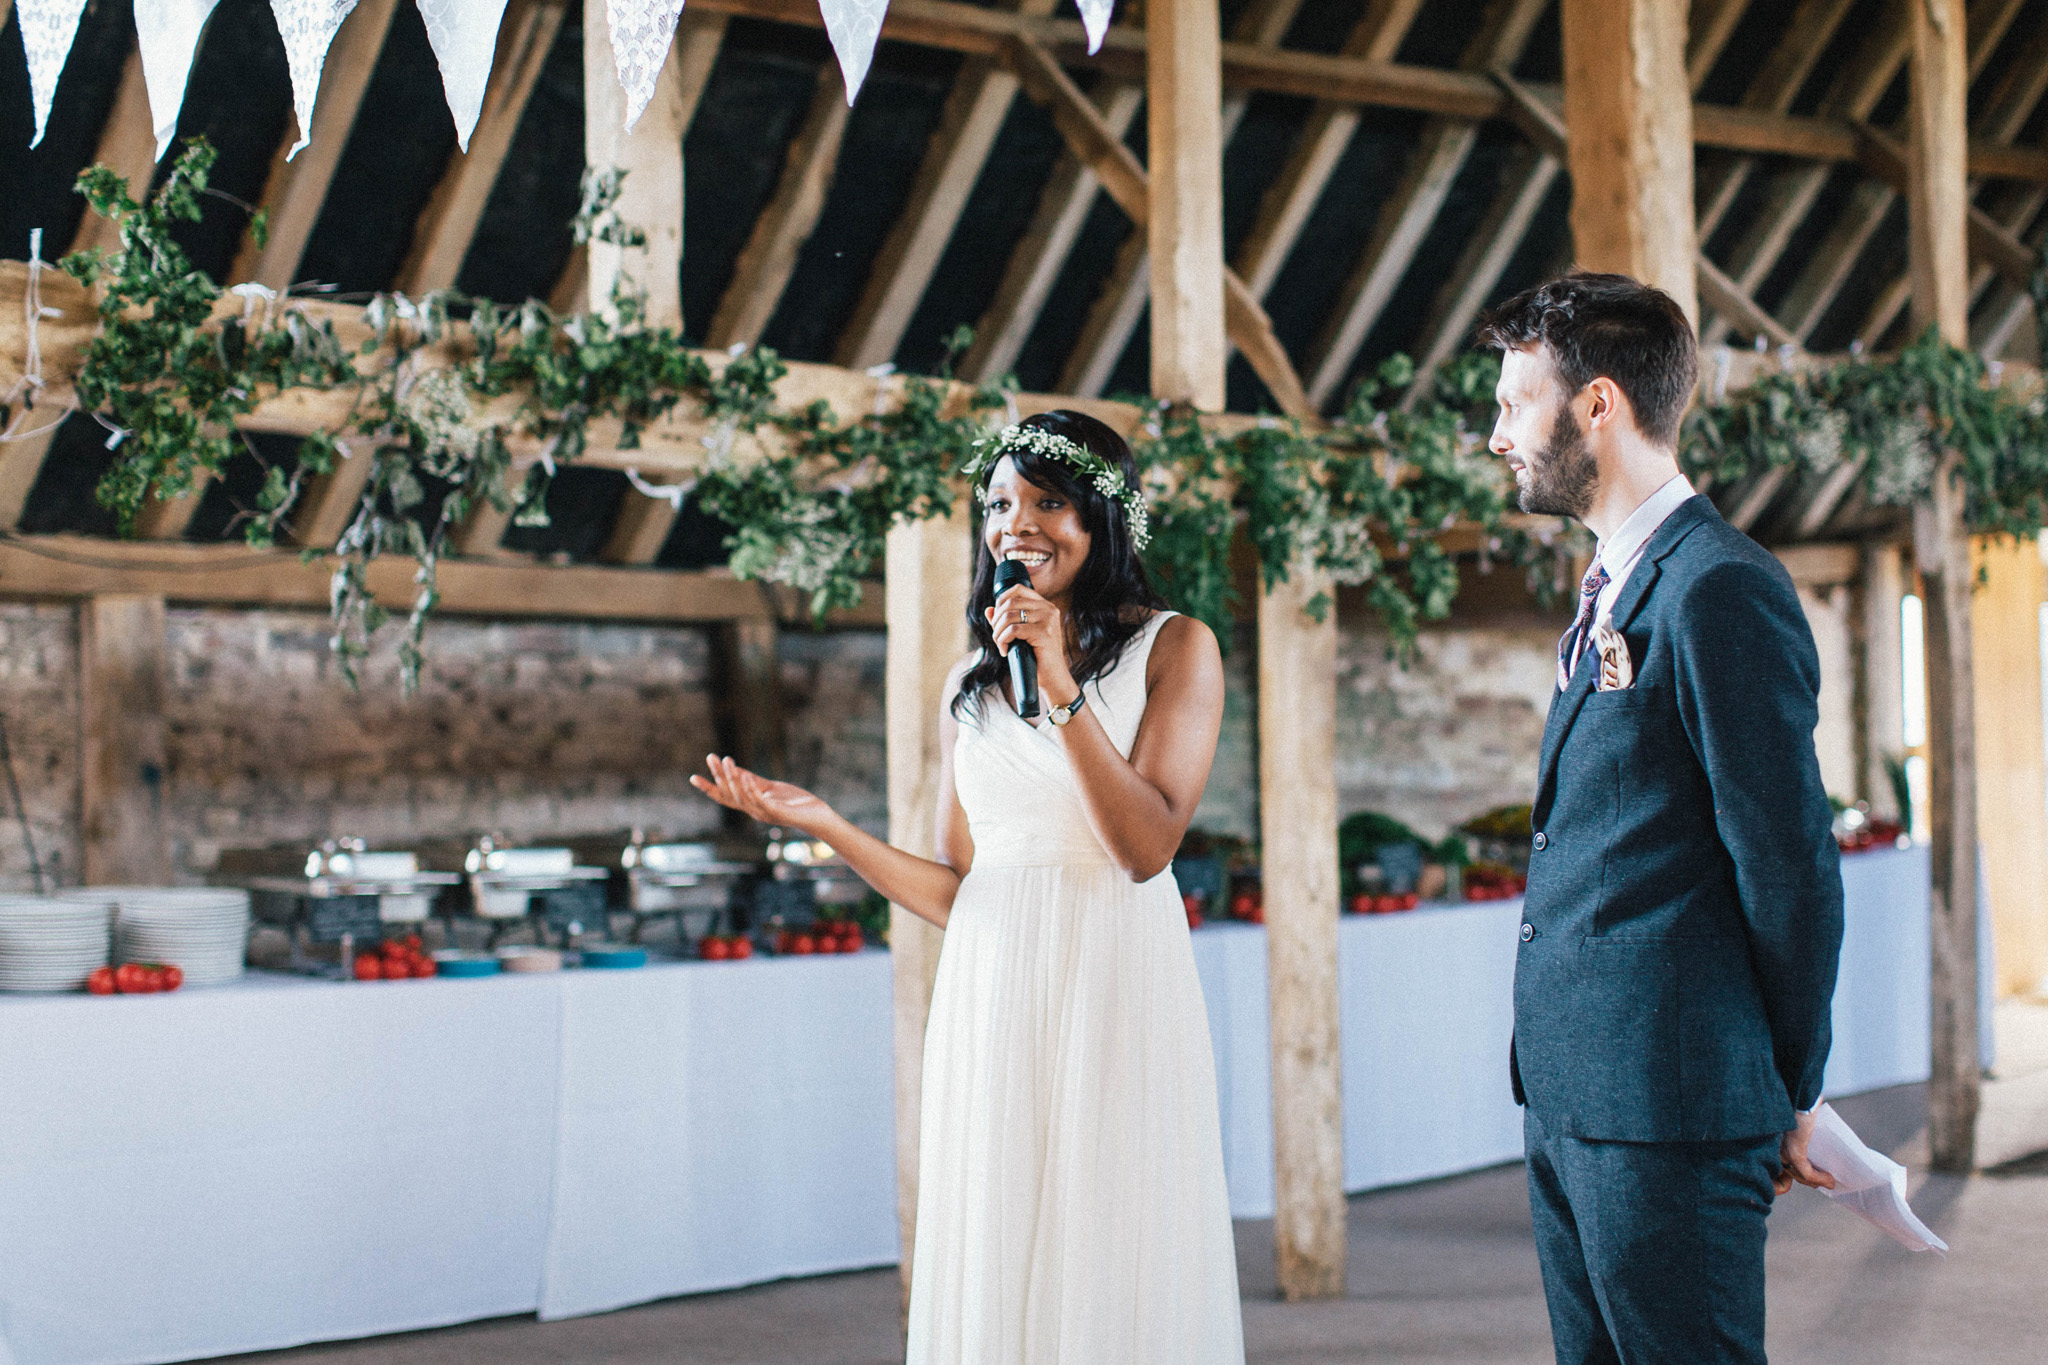 Sussex Barn wedding with a marriage on Dyke Road Brighton and reception at Sussex Barn, Hellingly. Wedding photography by Brighton Photographer Emma Lucy